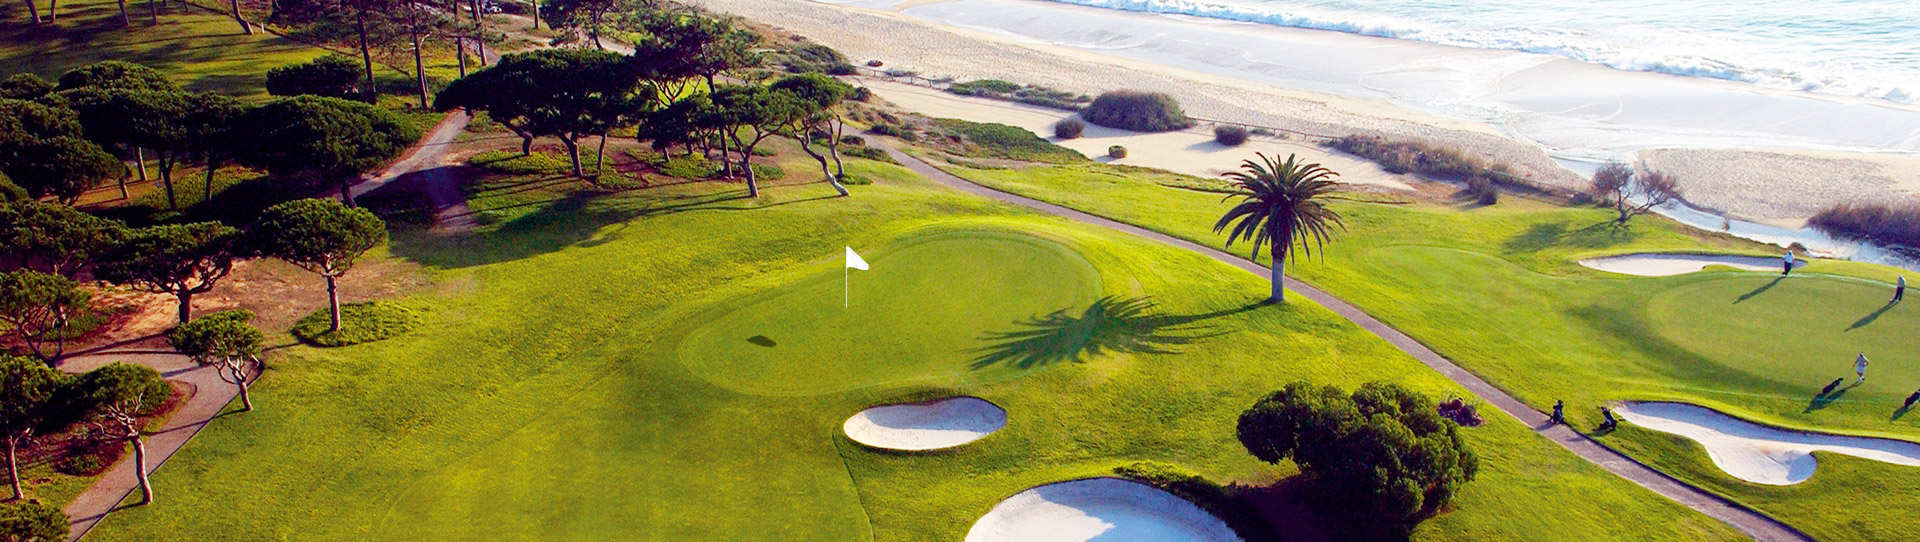 Vale do Lobo Double Joy - Photo 3